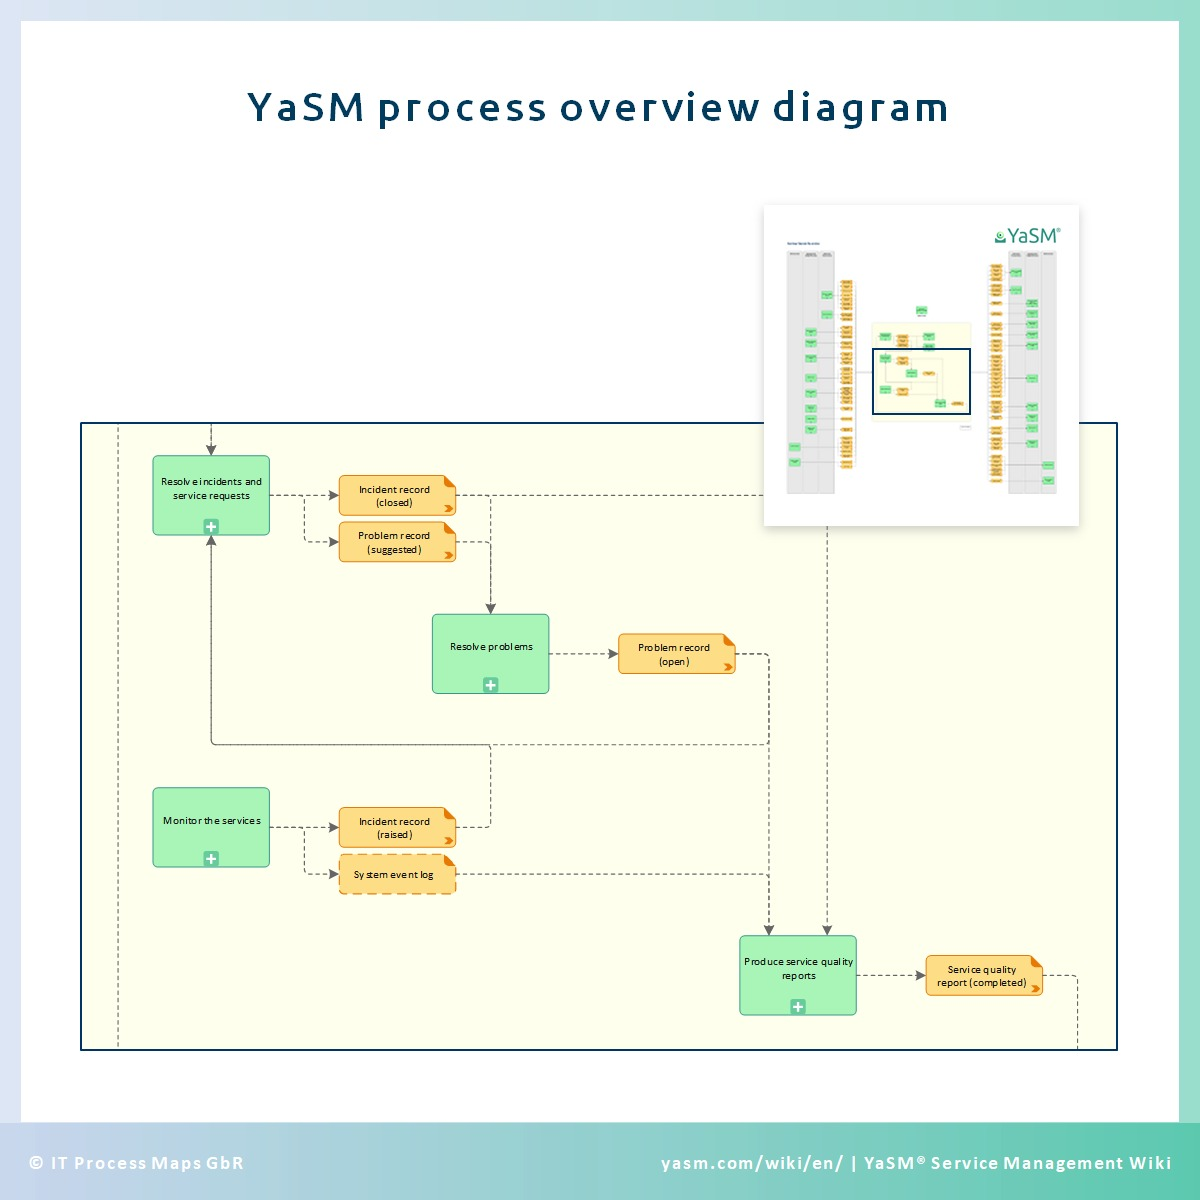 YaSM process overview diagram, depicting the most significant information flows of the service management processes.